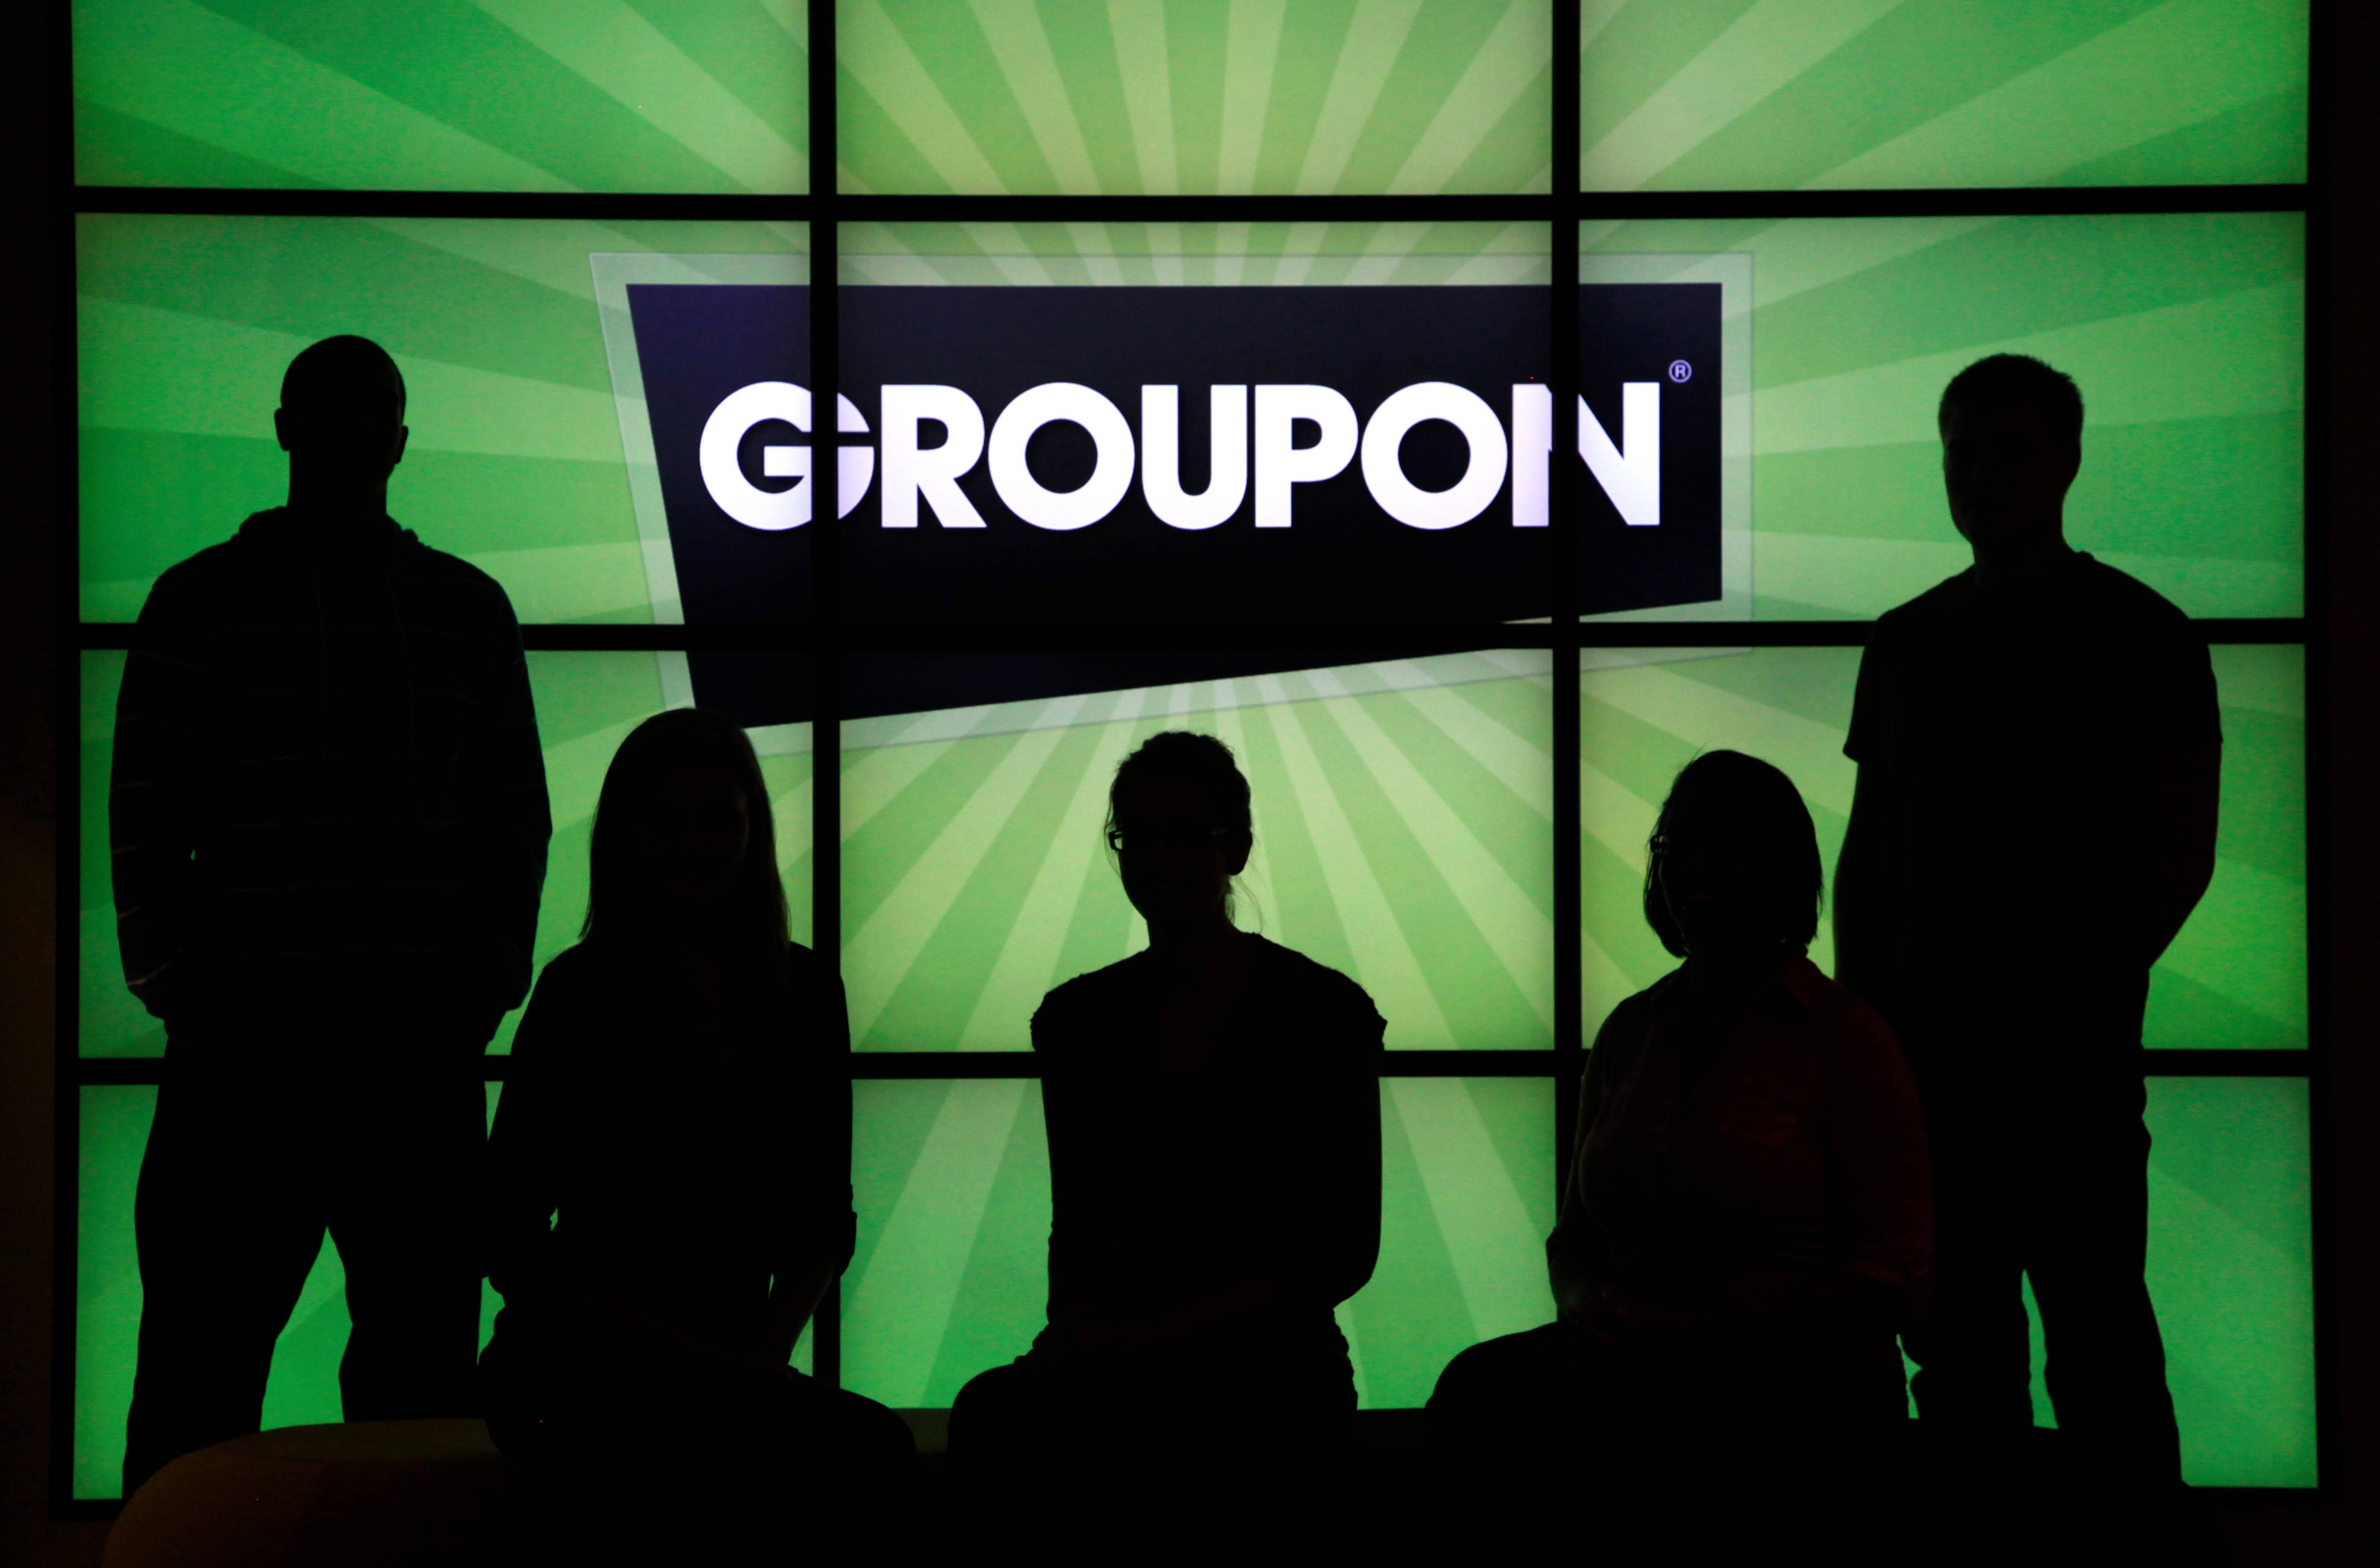 Groupon said Tuesday that it acquired Cloud Savings Company Ltd., parent company of online discount code platform Vouchercloud and brand loyalty provider Giftcloud, for $65 million as a way to grow internationally.